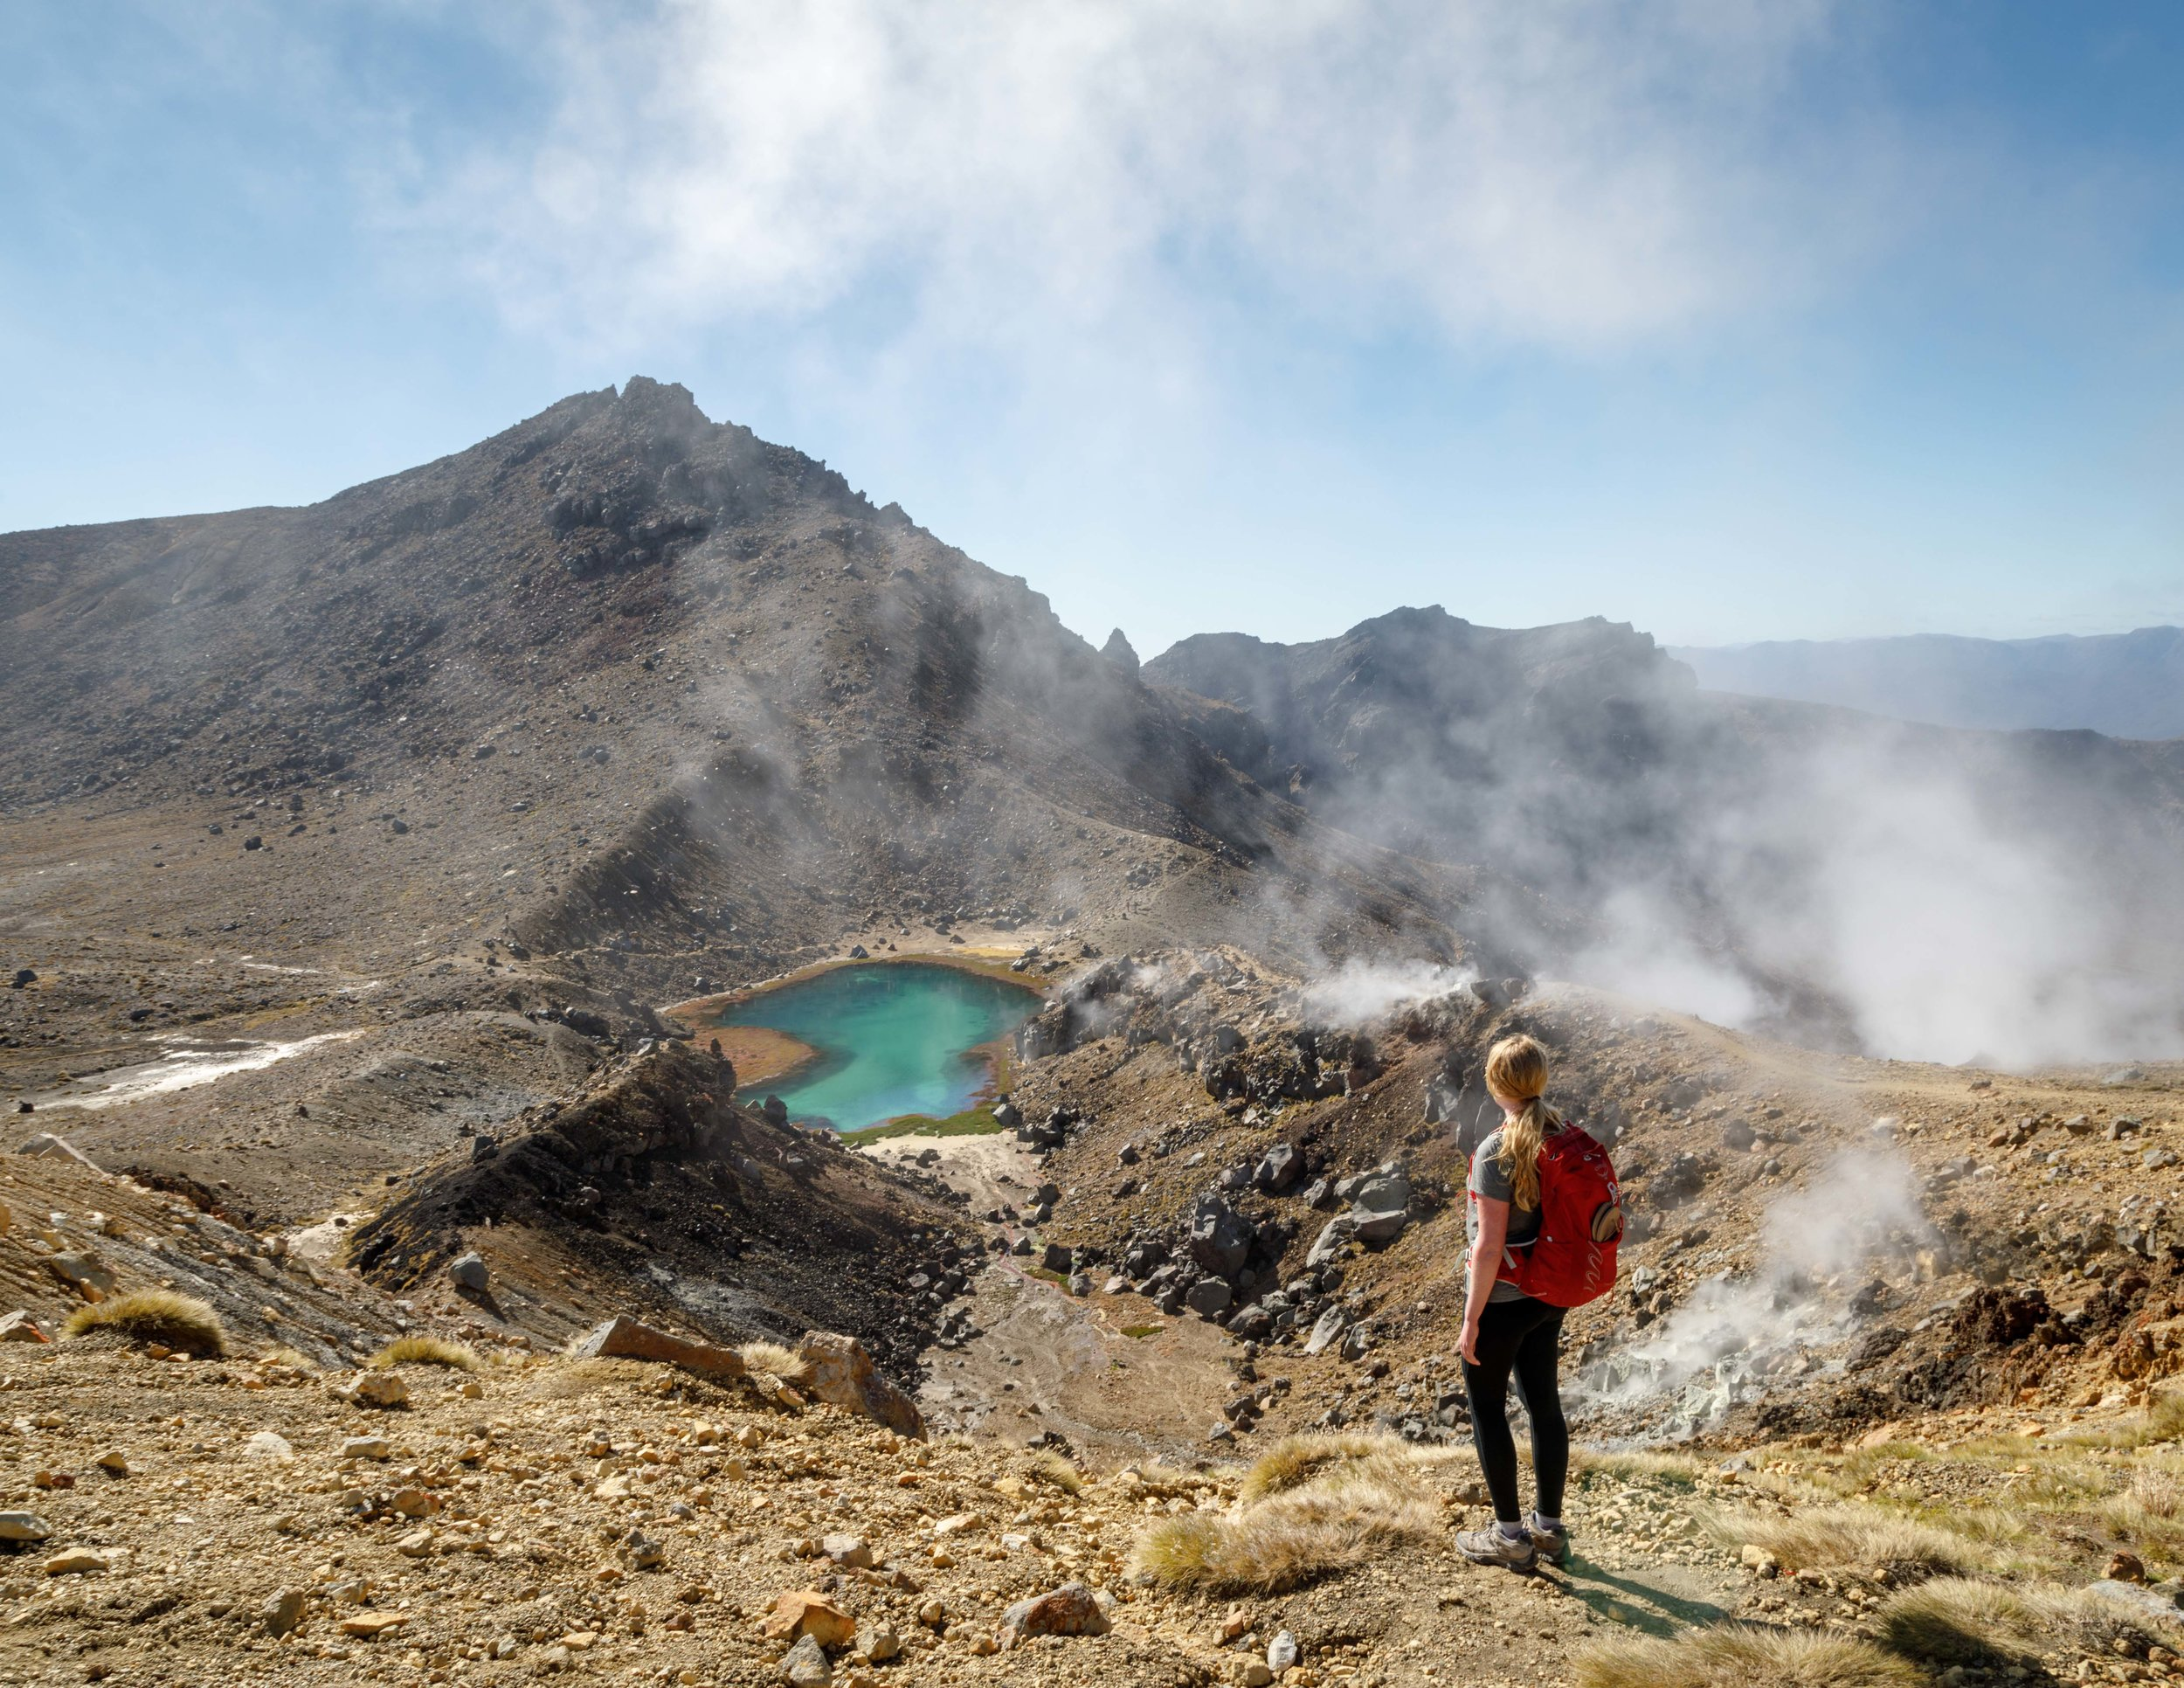 One of the Emerald Lakes from the climb up to the Red Crater